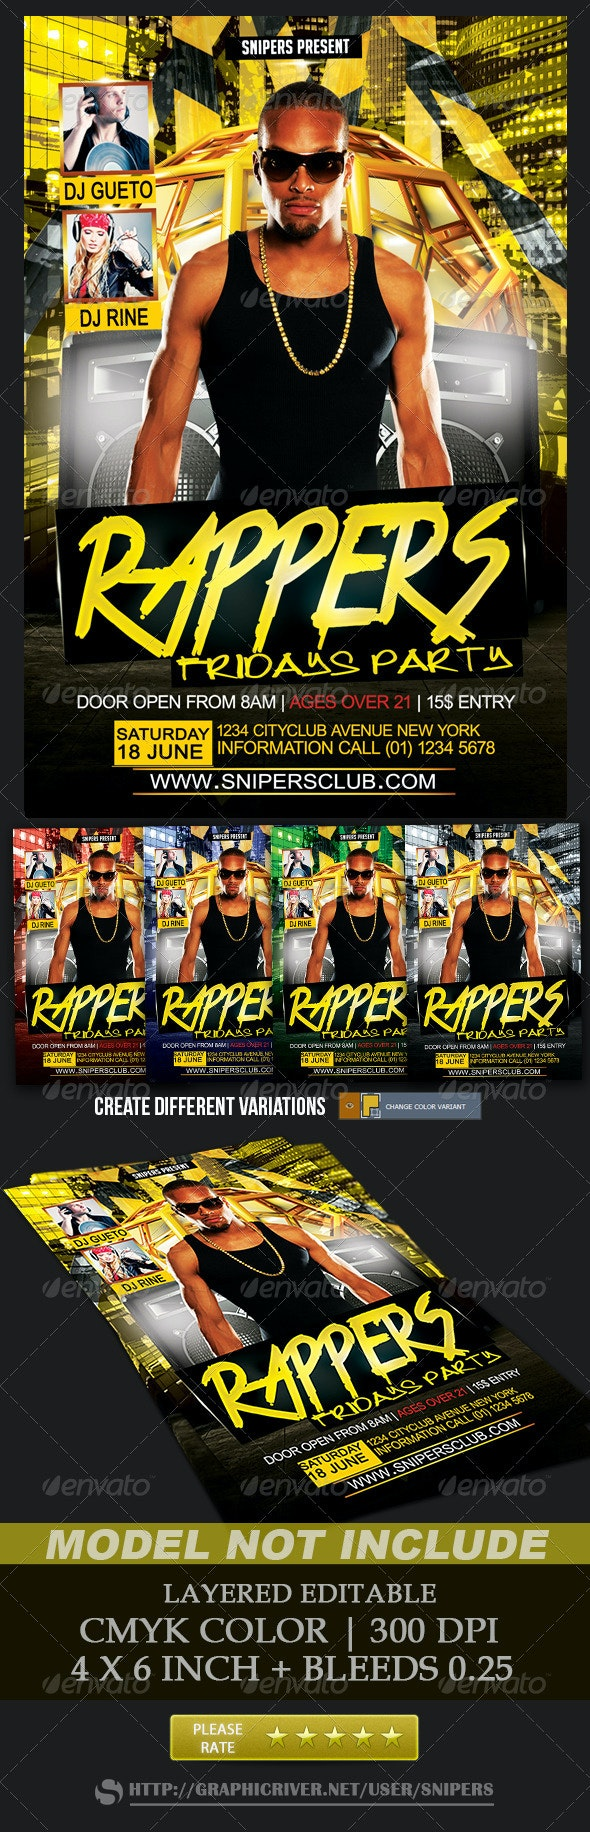 Rappers Fridays Party - Events Flyers